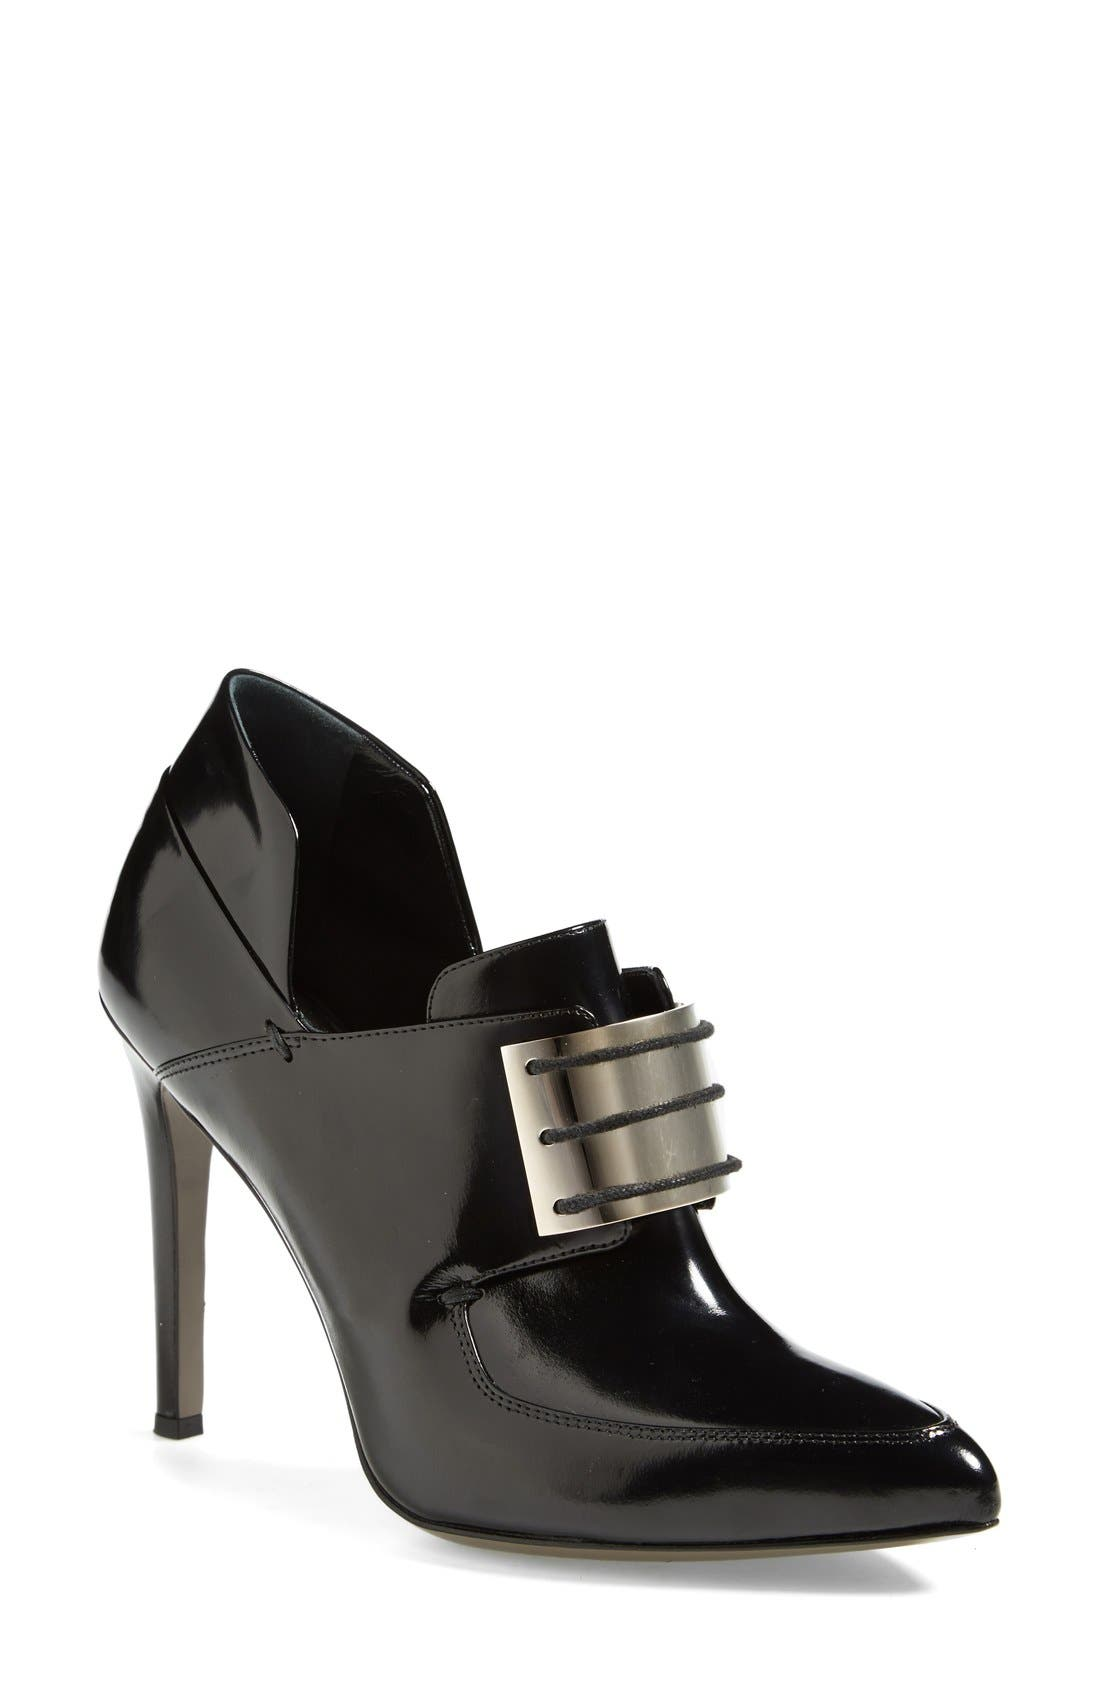 Main Image - Jason Wu Metal Plate Lace-Up Leather Loafer Bootie (Women)